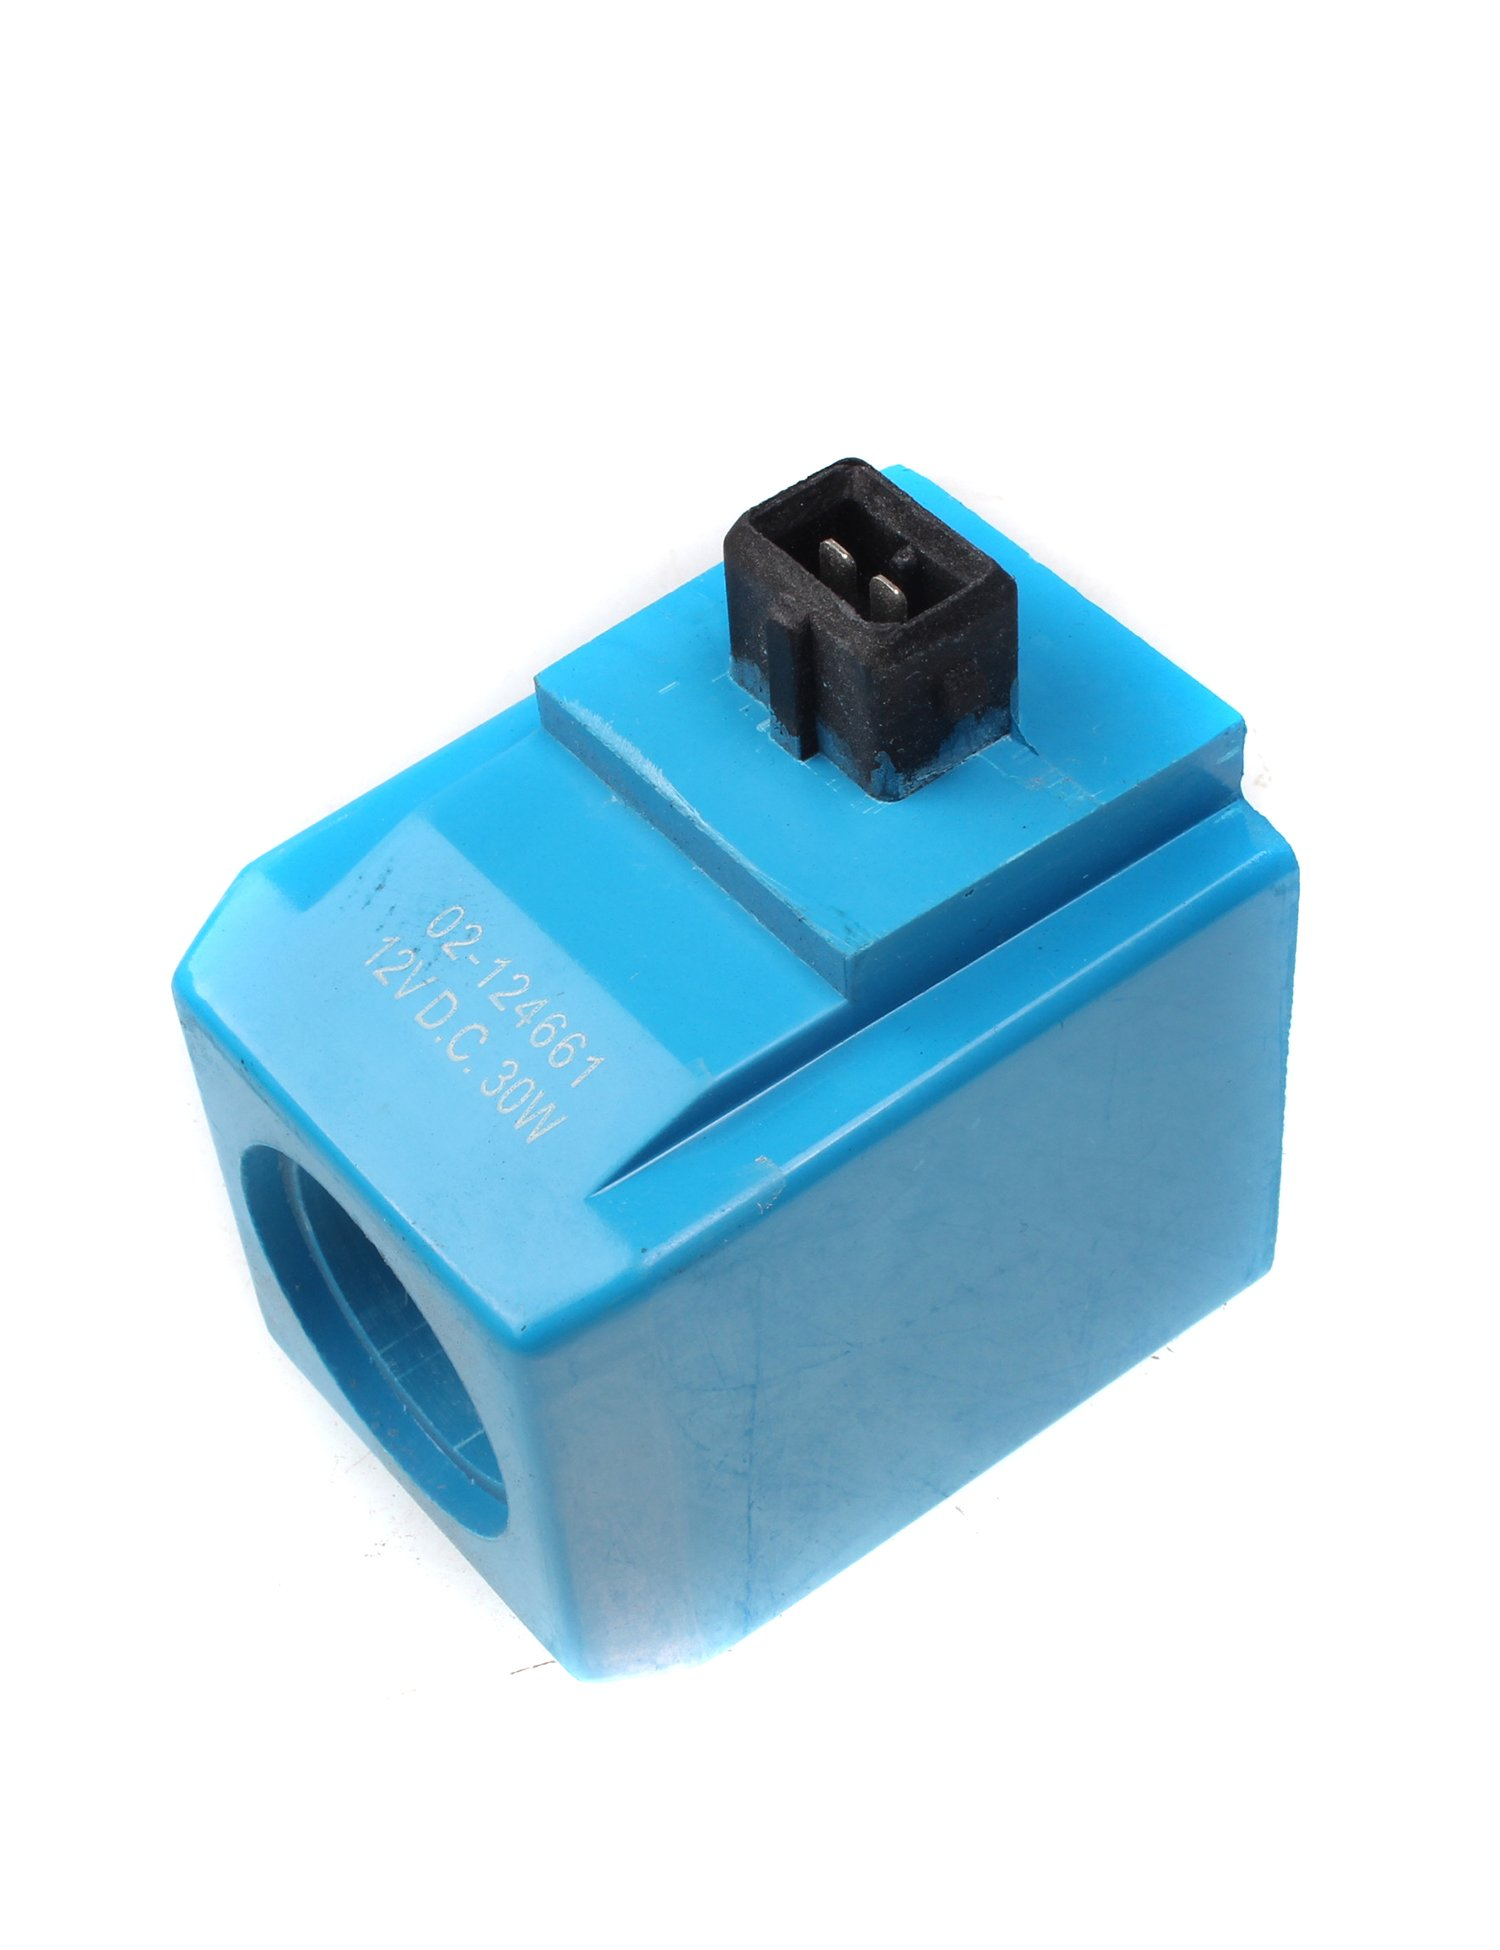 12V 30W Solenoid Coil 02/124661 02-124661 02124661 for Eaton Vickers